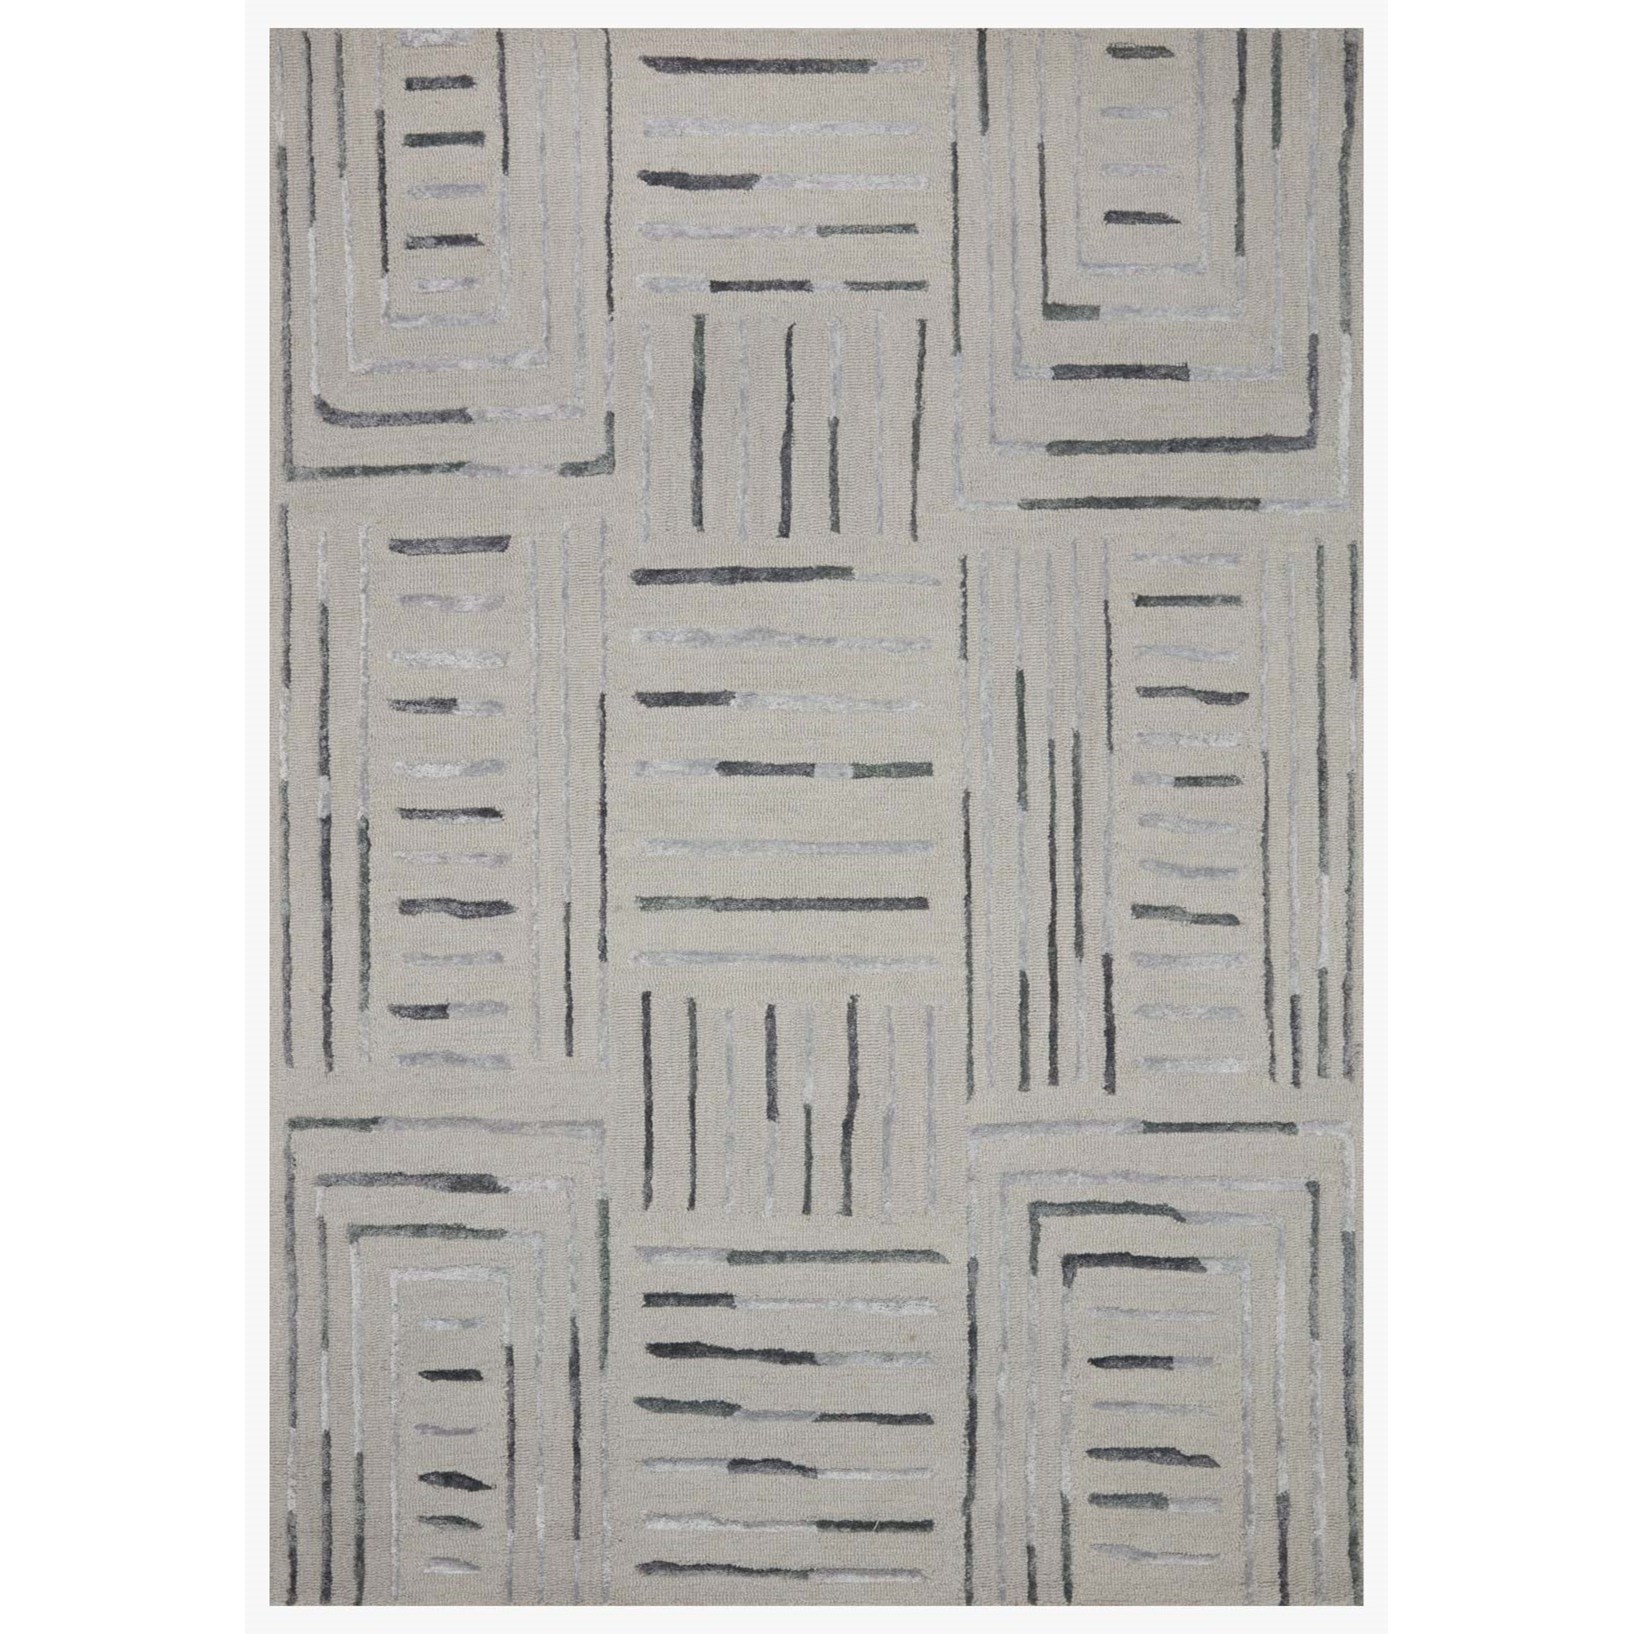 "Verve 2'3"" x 3'9"" Silver / Slate Rug by Loloi Rugs at Sprintz Furniture"